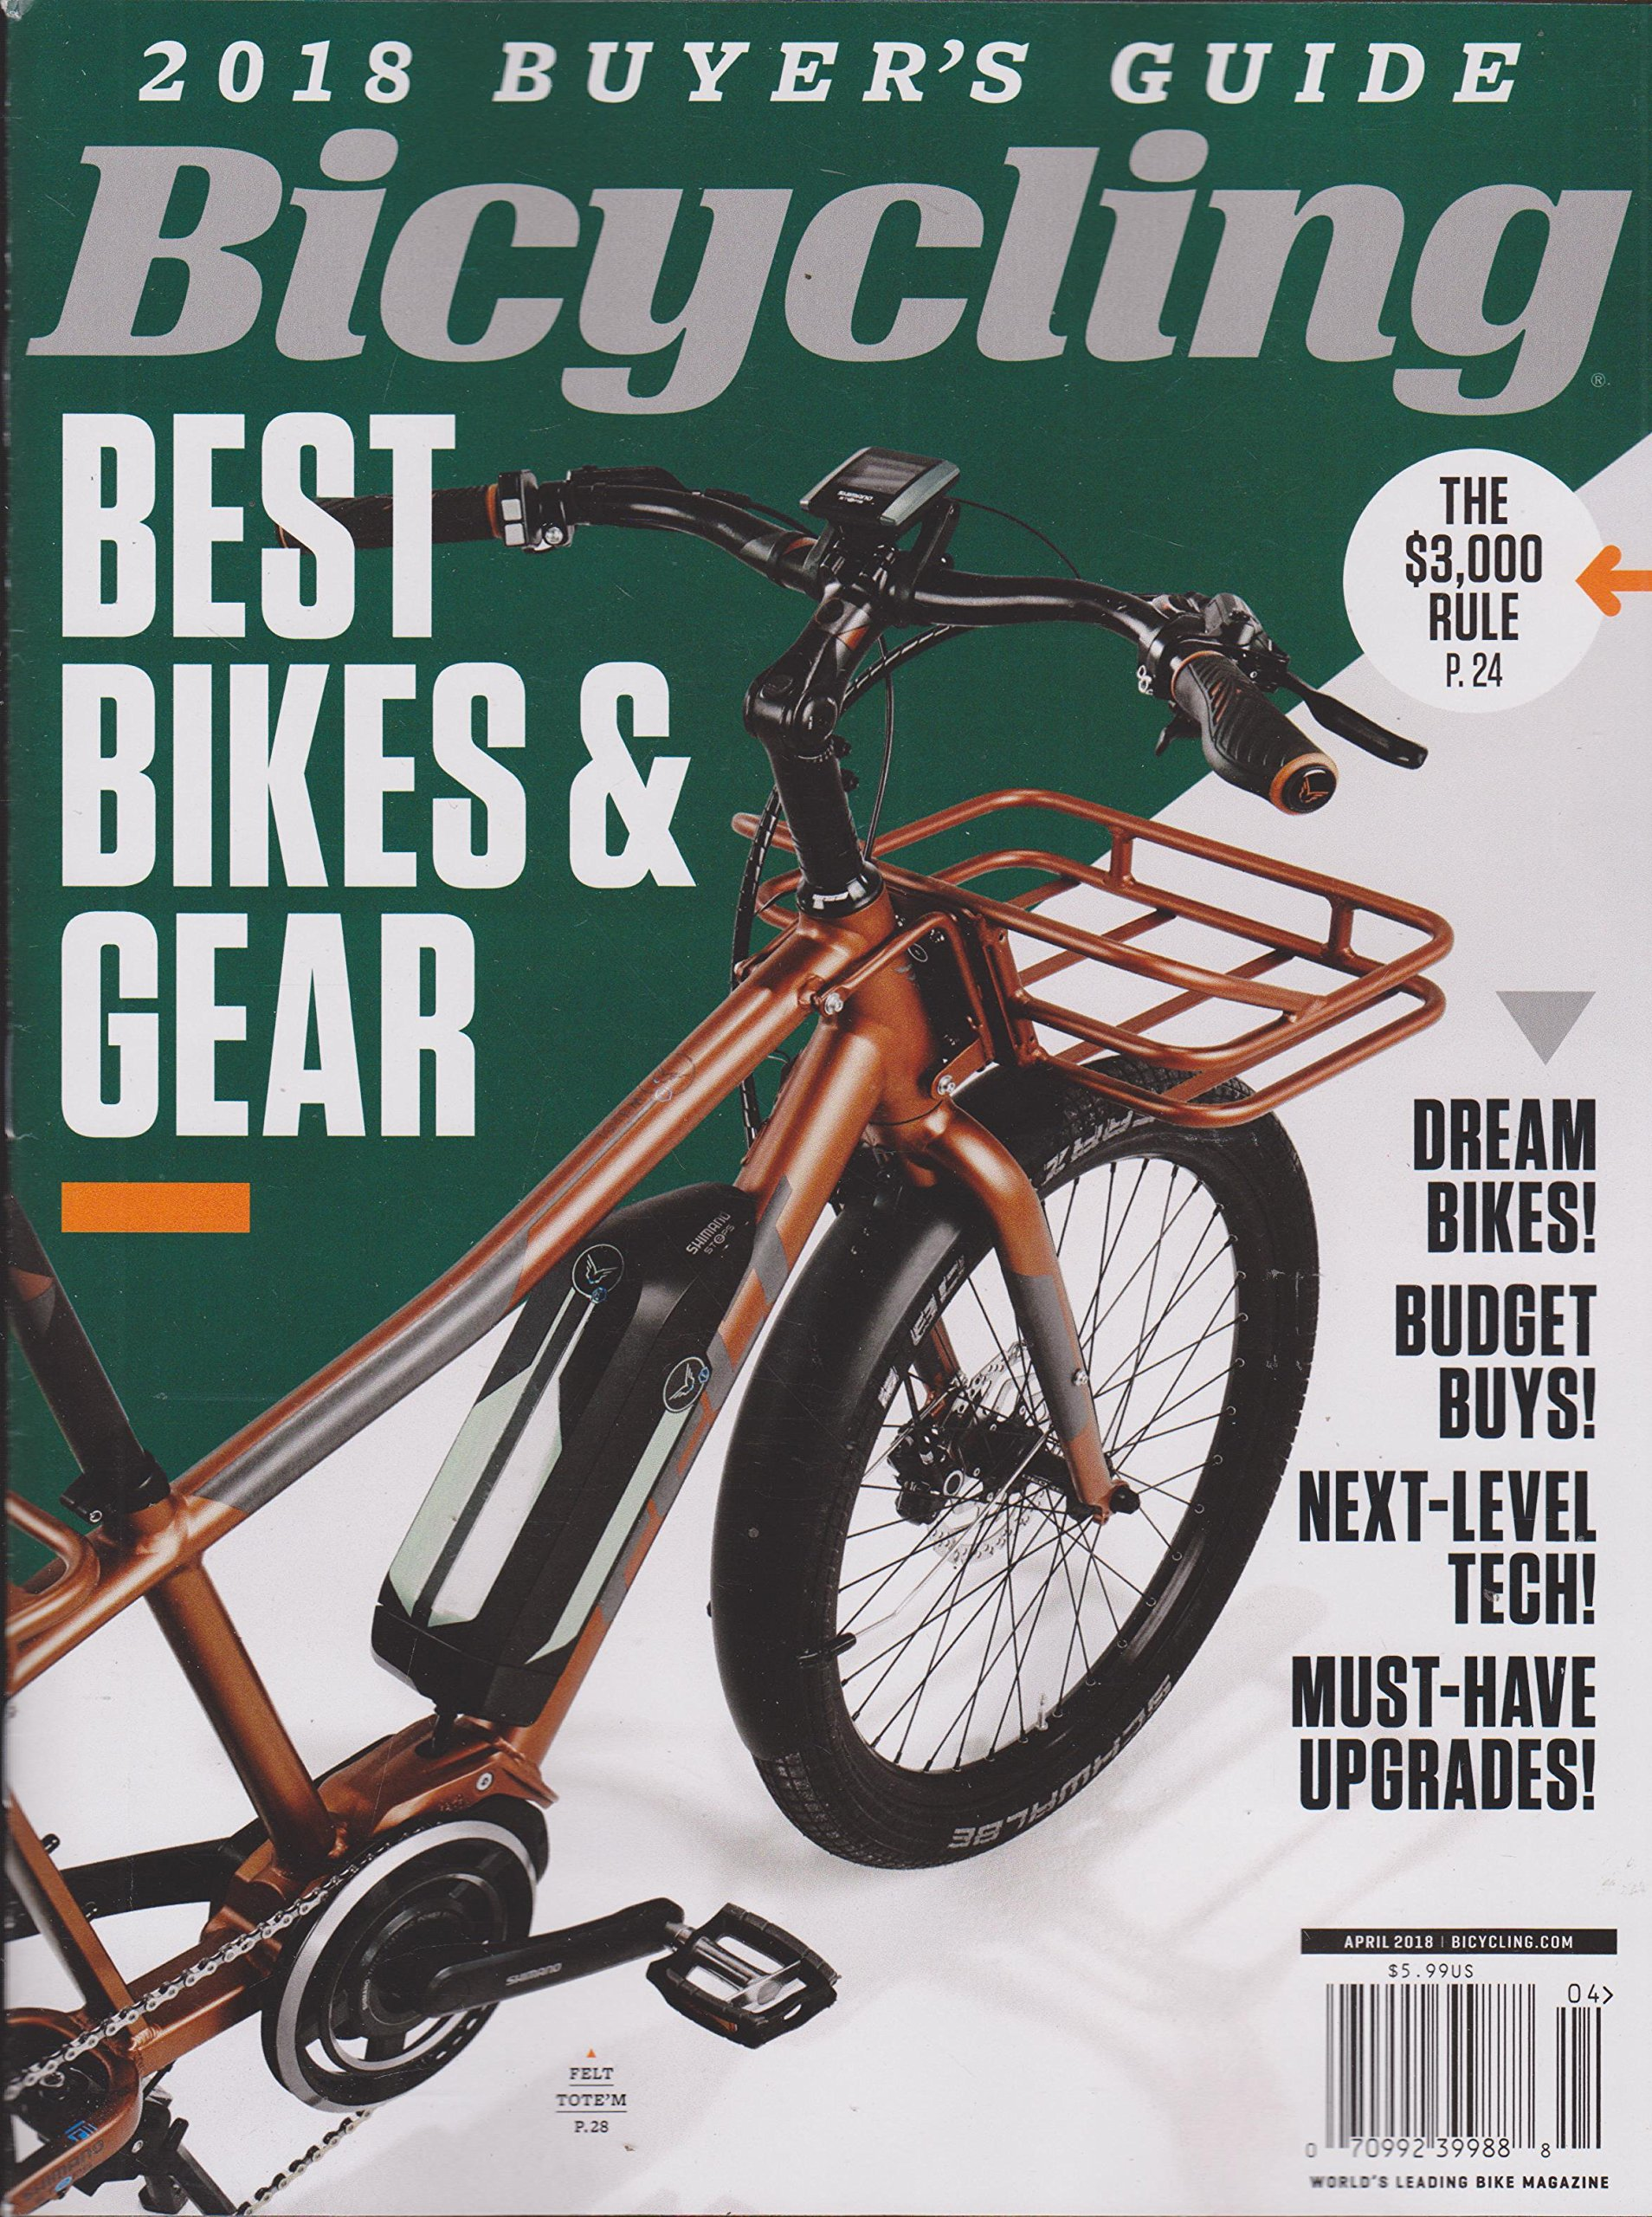 Download Bicycling 2018 Buyer's Guide Best Bikes & Gear April 2018 Copper Color Bike Cover ebook